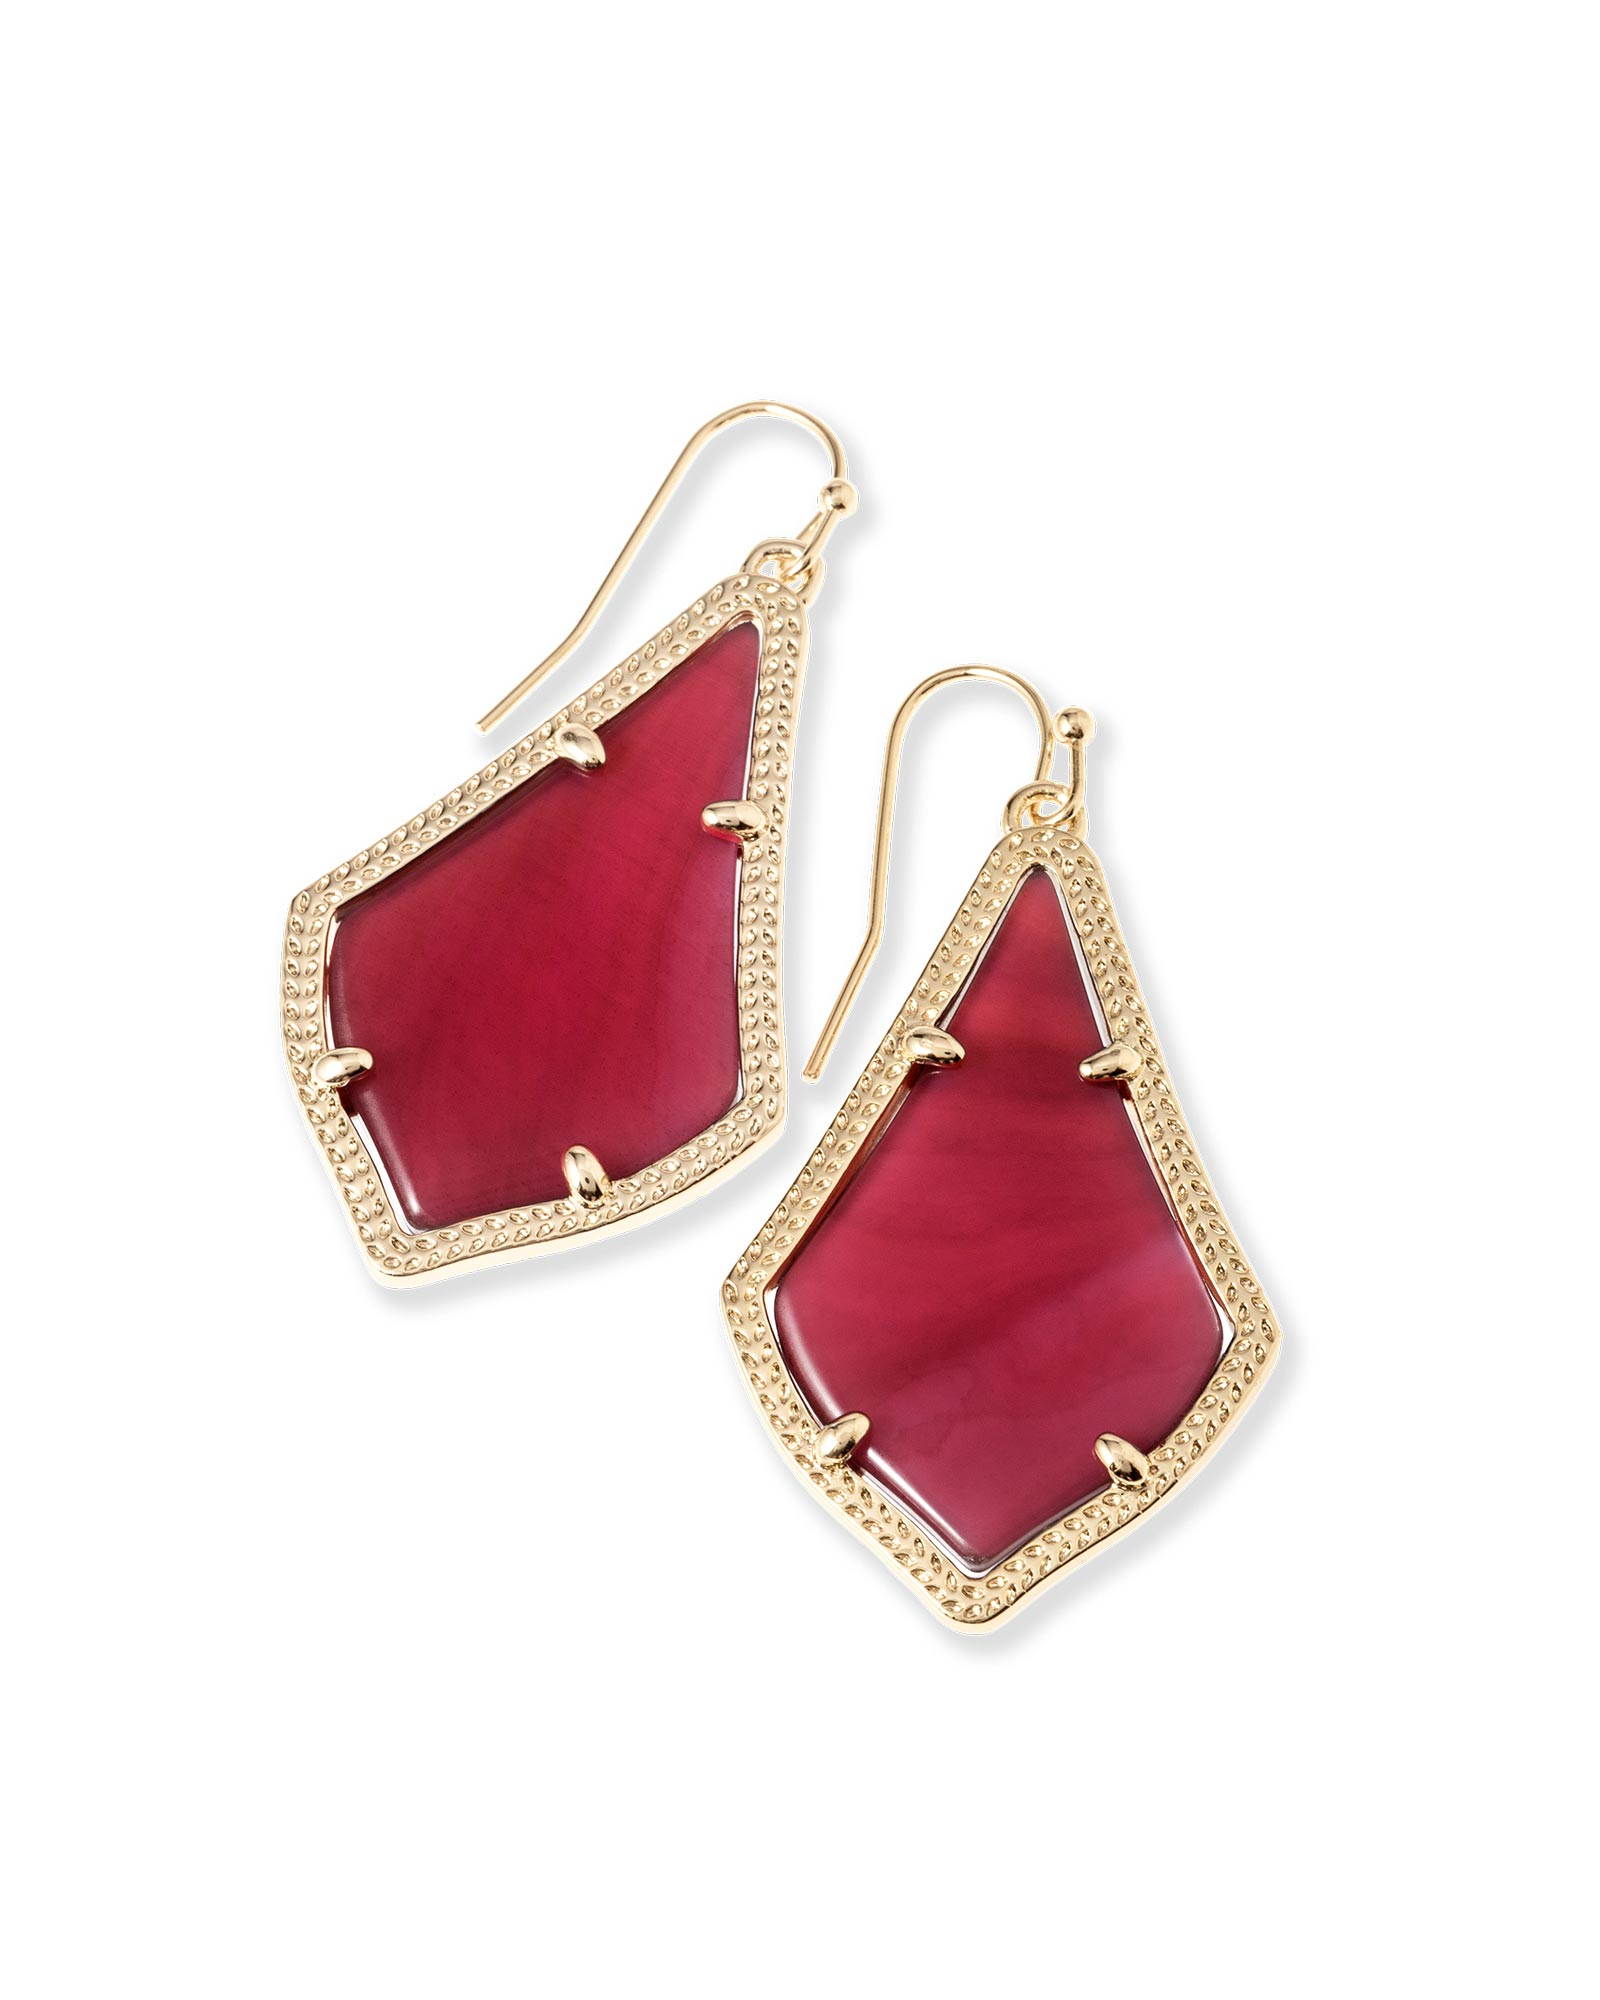 Alex Drop Earrings in Burgundy Illusion